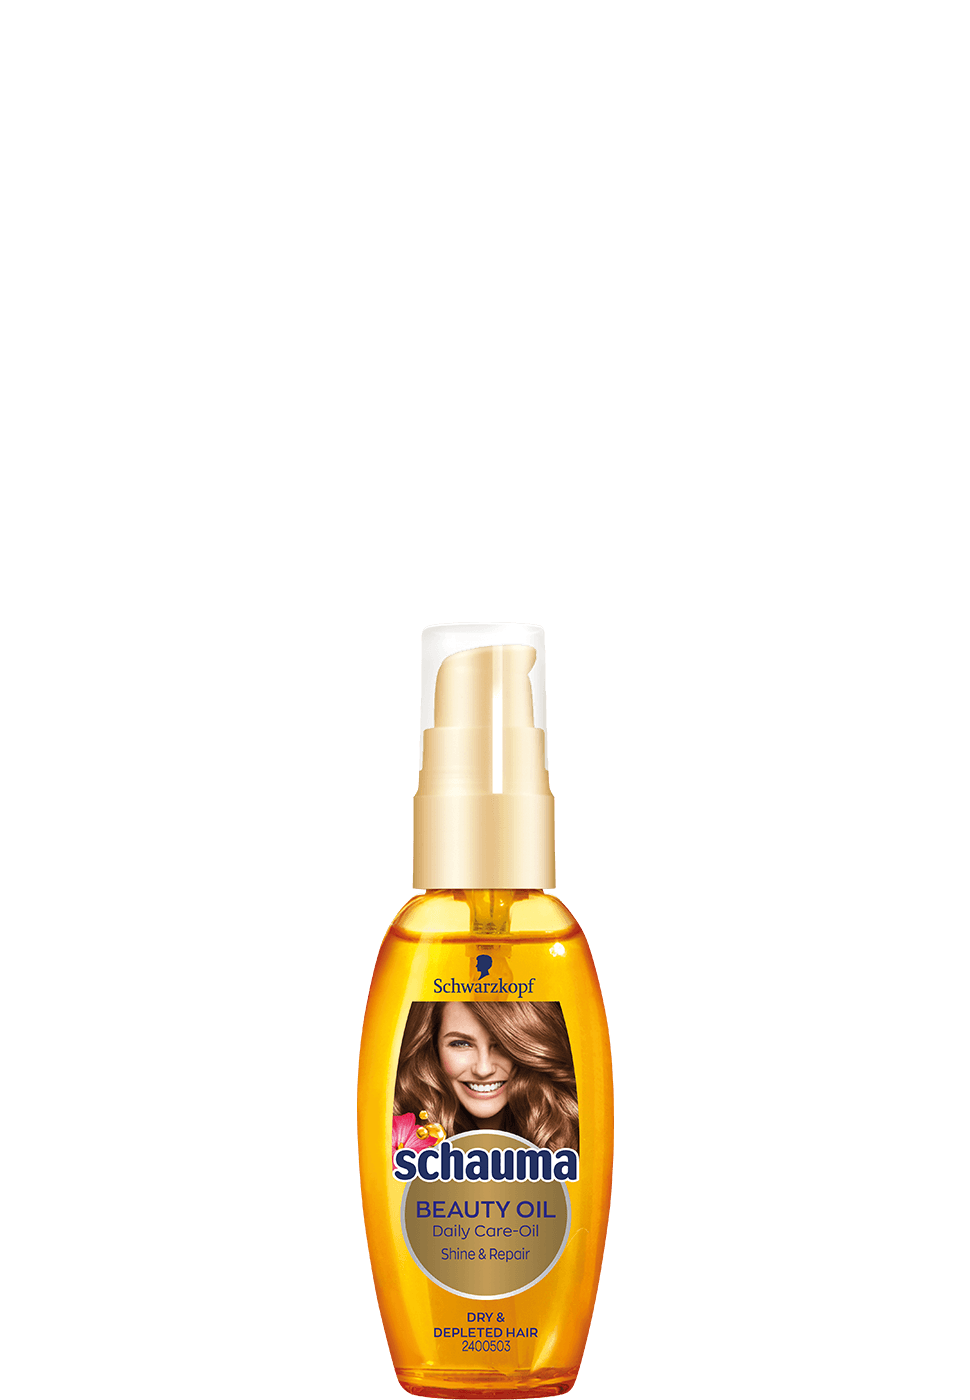 schauma_com_beauty_oil_daily_care_oil_970x1400